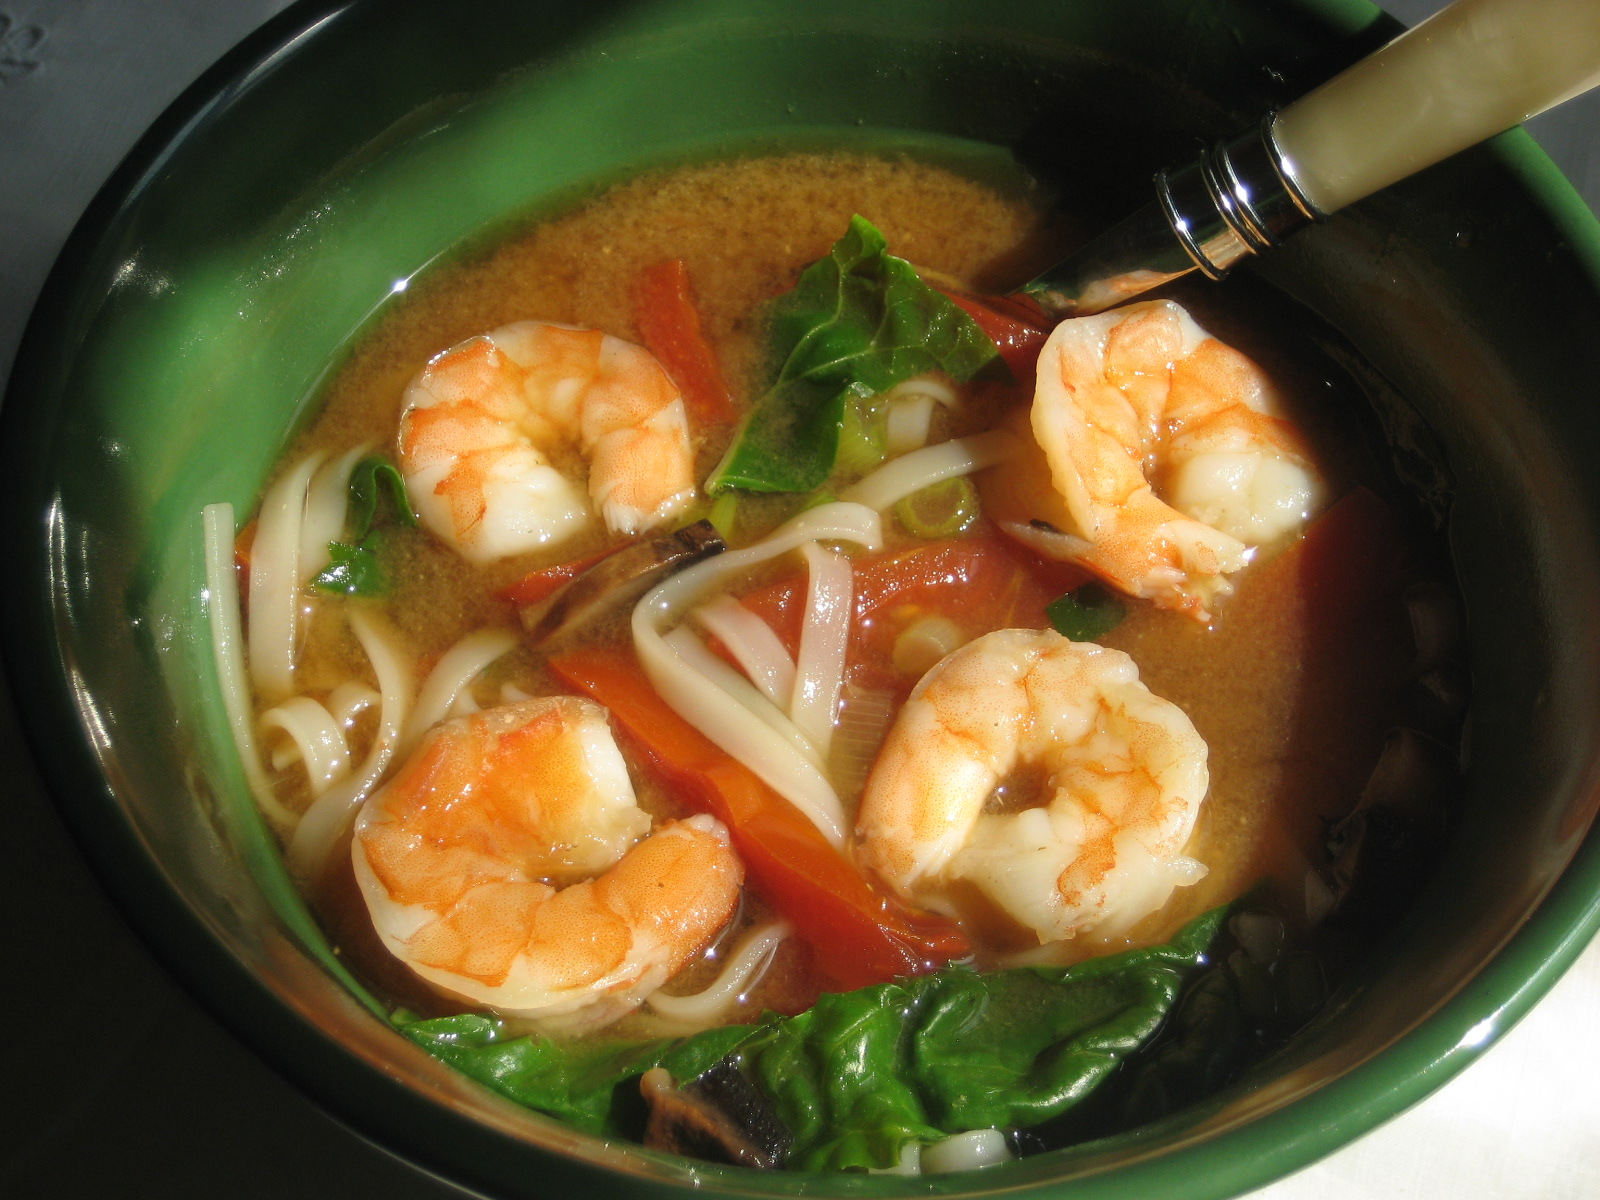 Because shrimp is highly perishable, it is often sold frozen in large bags. Shrimp defrosts quickly during the cooking process and retains its flavor.